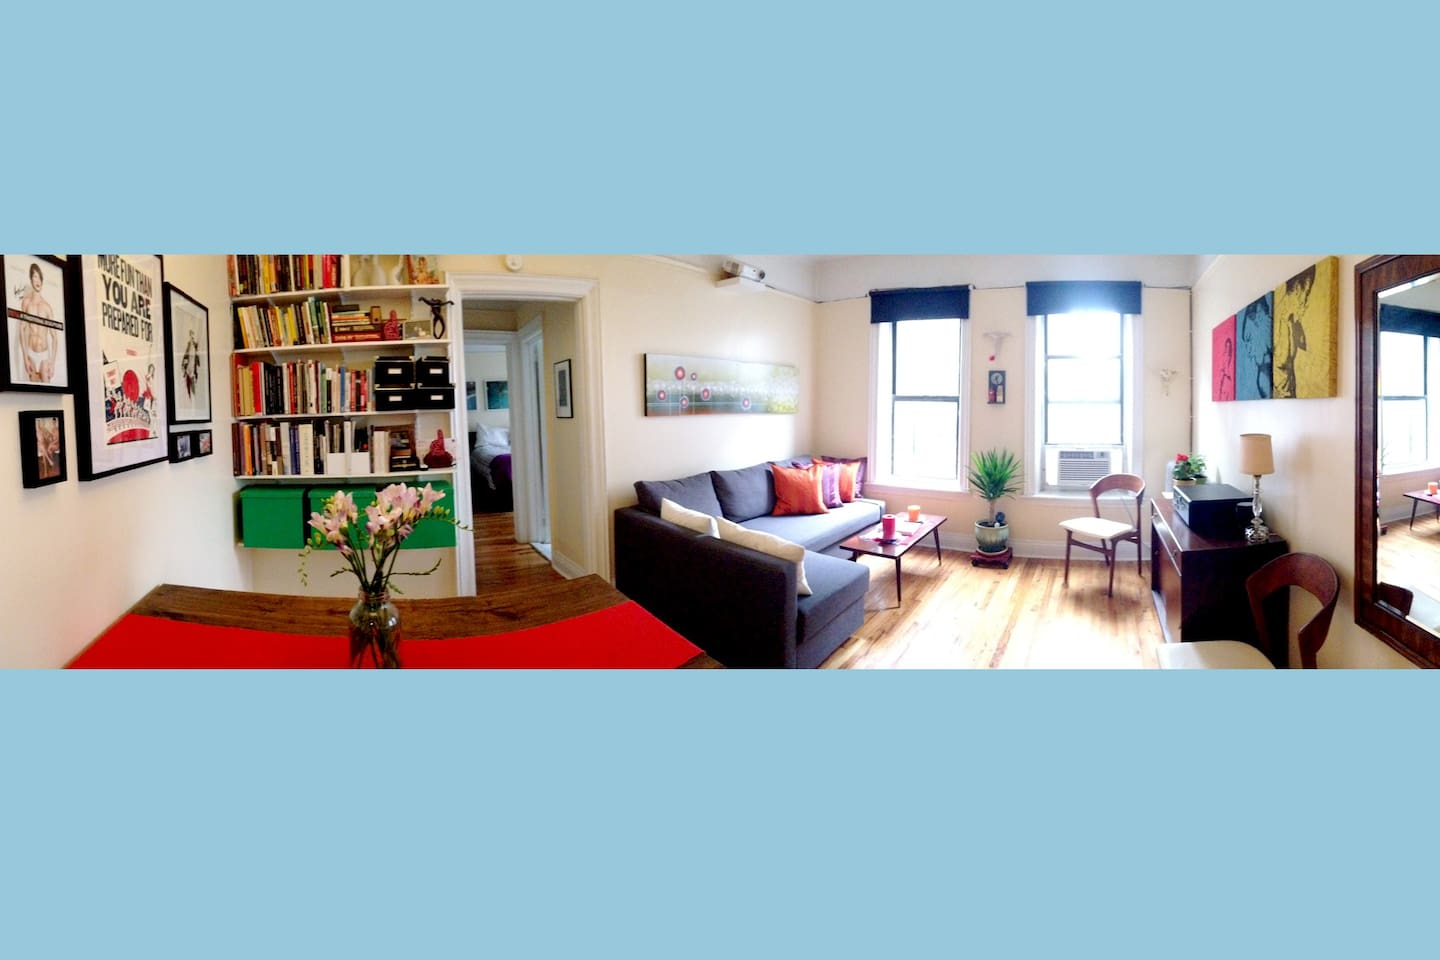 Welcome to our bright, colorful, art-filled apartment in Brooklyn!